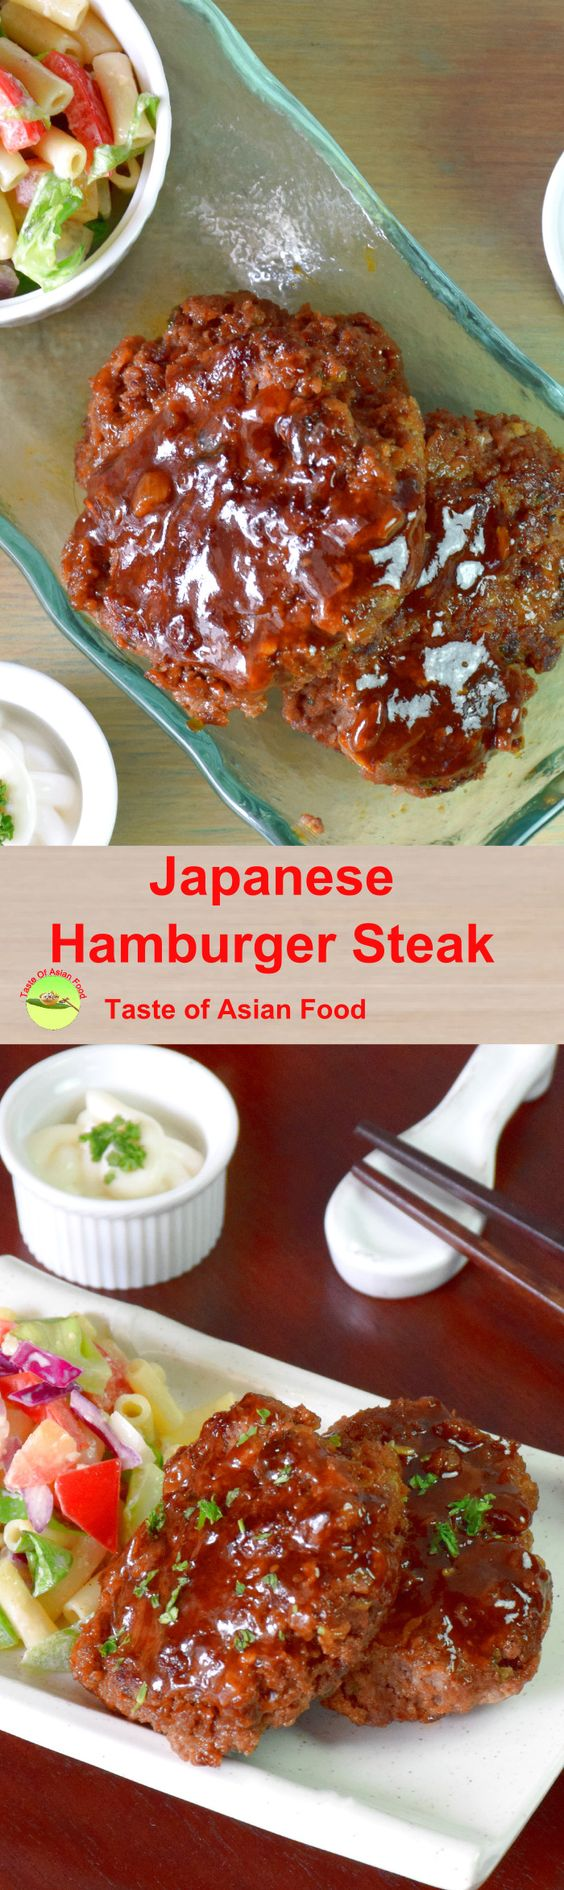 steak hamburg steak hambagu recipe yummly japanese hamburger steak ...